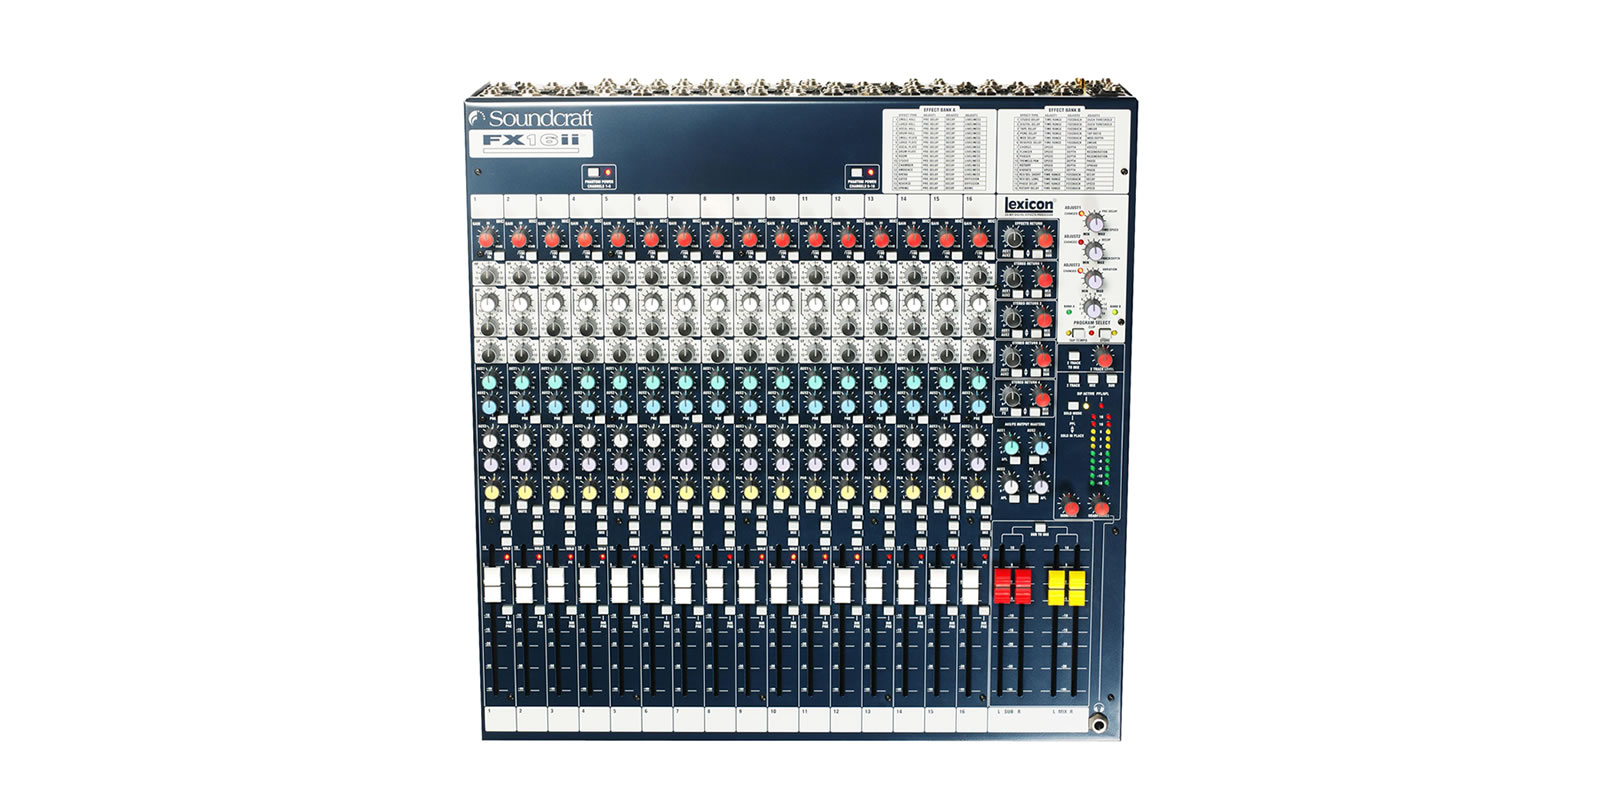 Fx16ii Soundcraft Professional Audio Mixers Supply Summing Amplifier For Mixer Circuit Schematic Diagram Top Tiny Square